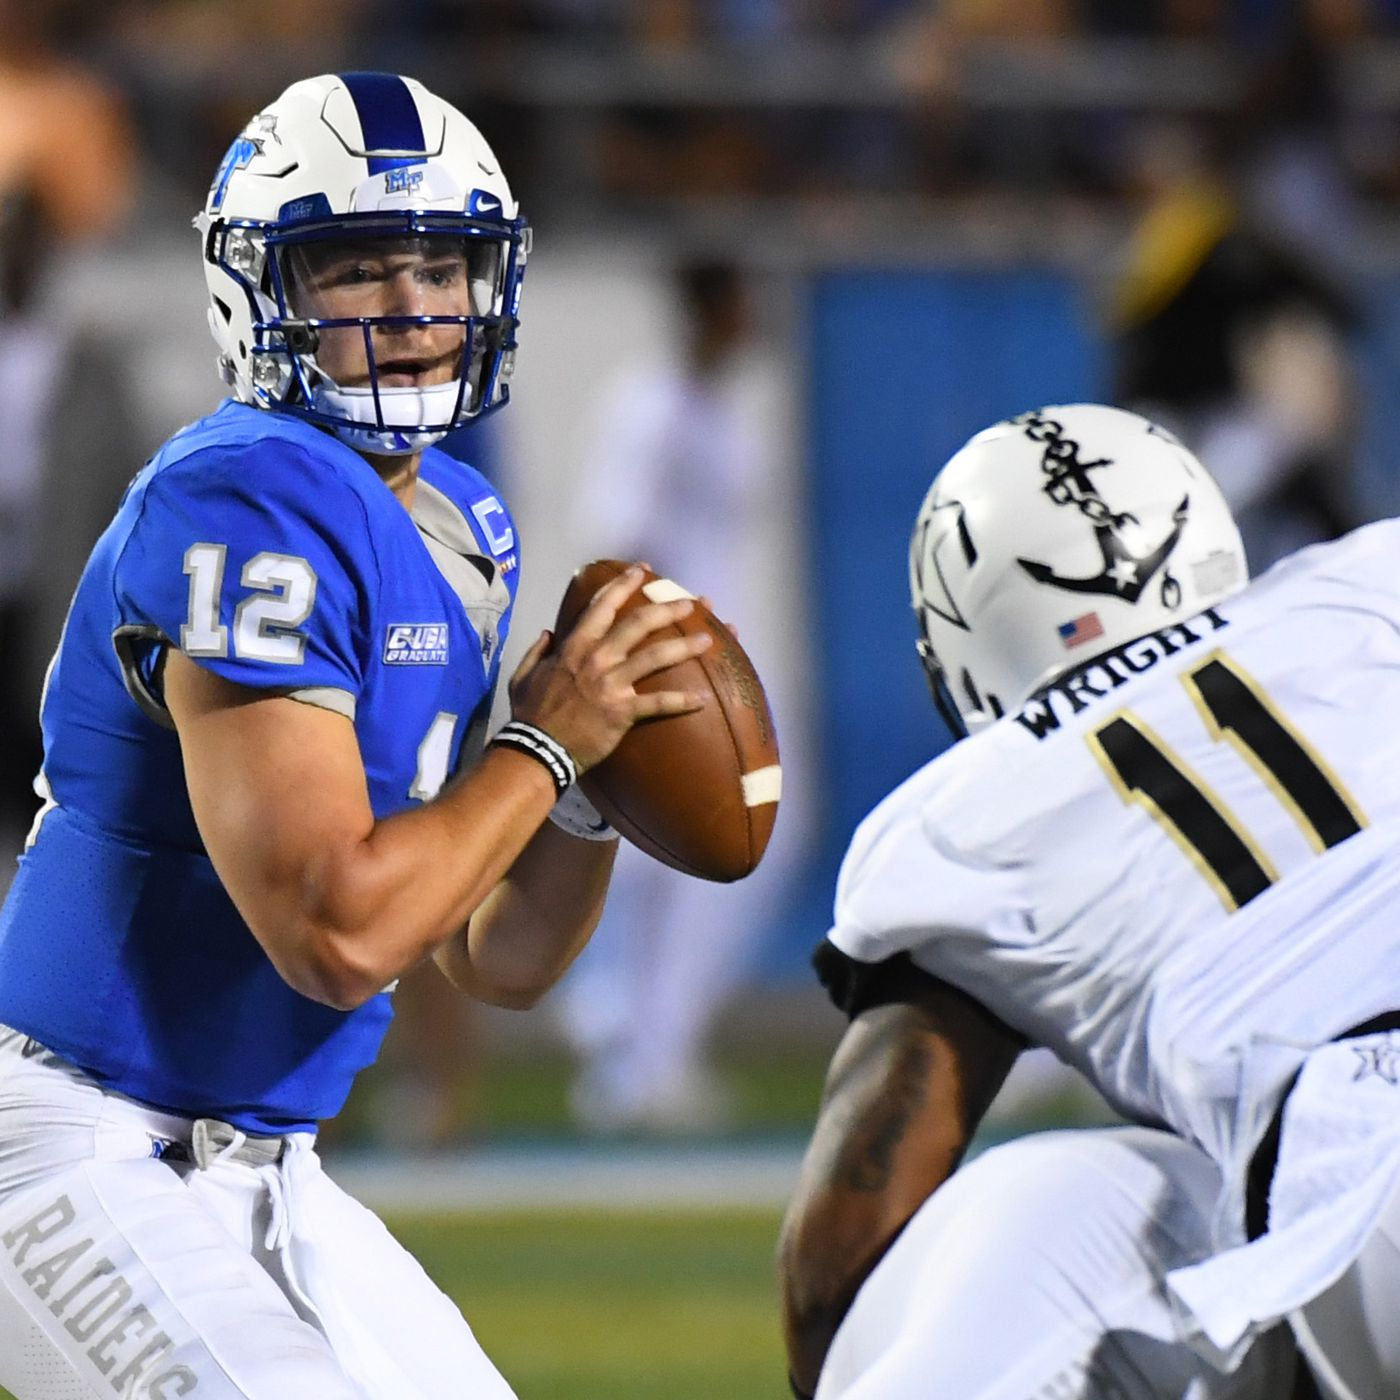 2018 Middle Tennessee football preview: C-USA dark horse